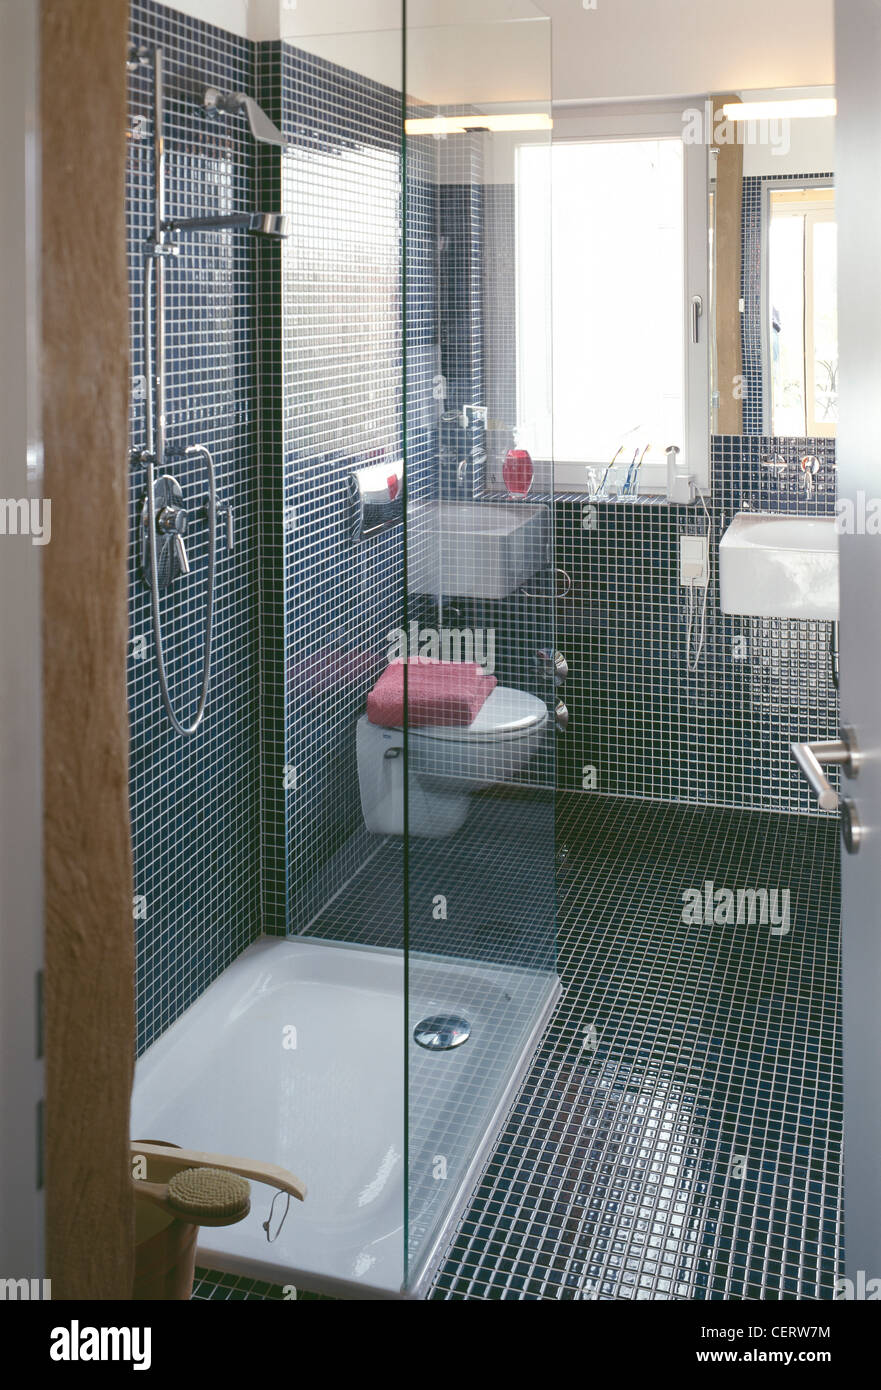 Modern style bathroom mosaic tiled floand walls, shower enclosure ...